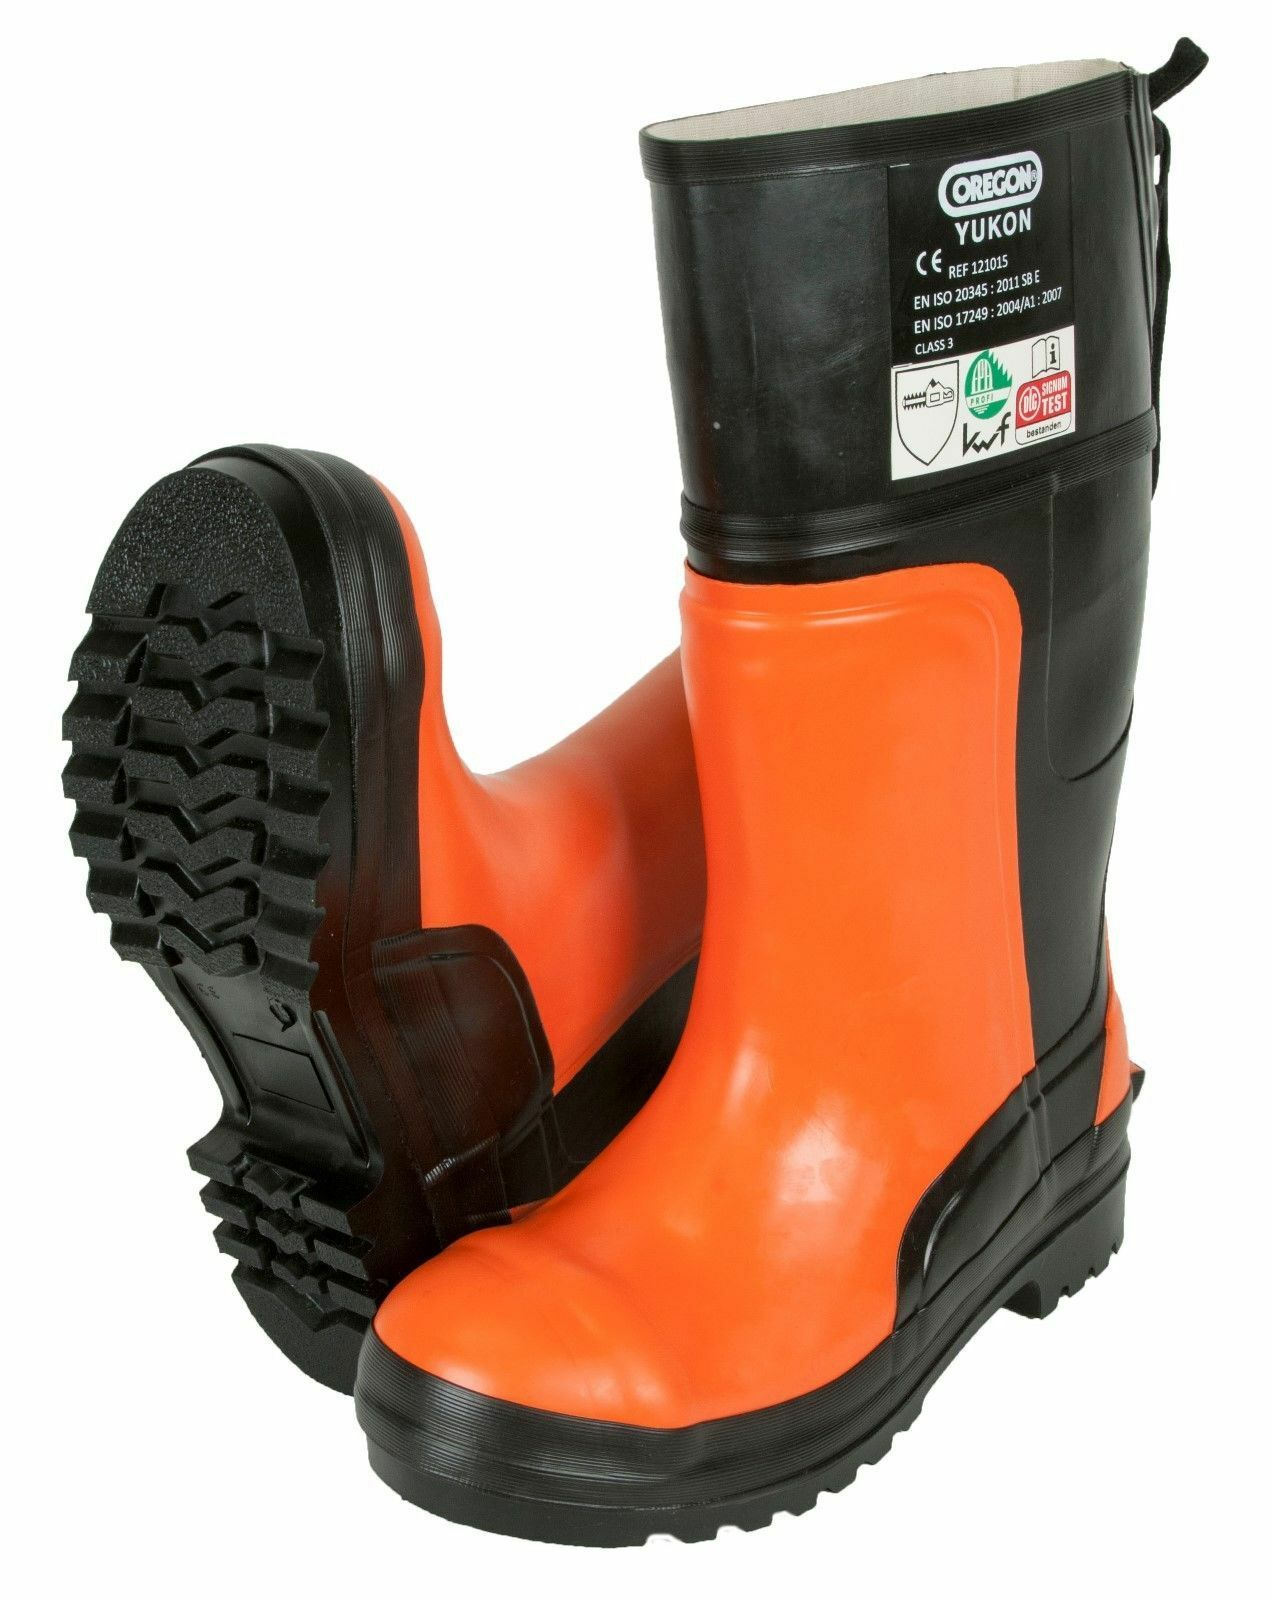 Oregon Yukon Chainsaw Rubber Safety Stiefel Class 3 (28 m s) - All Größes